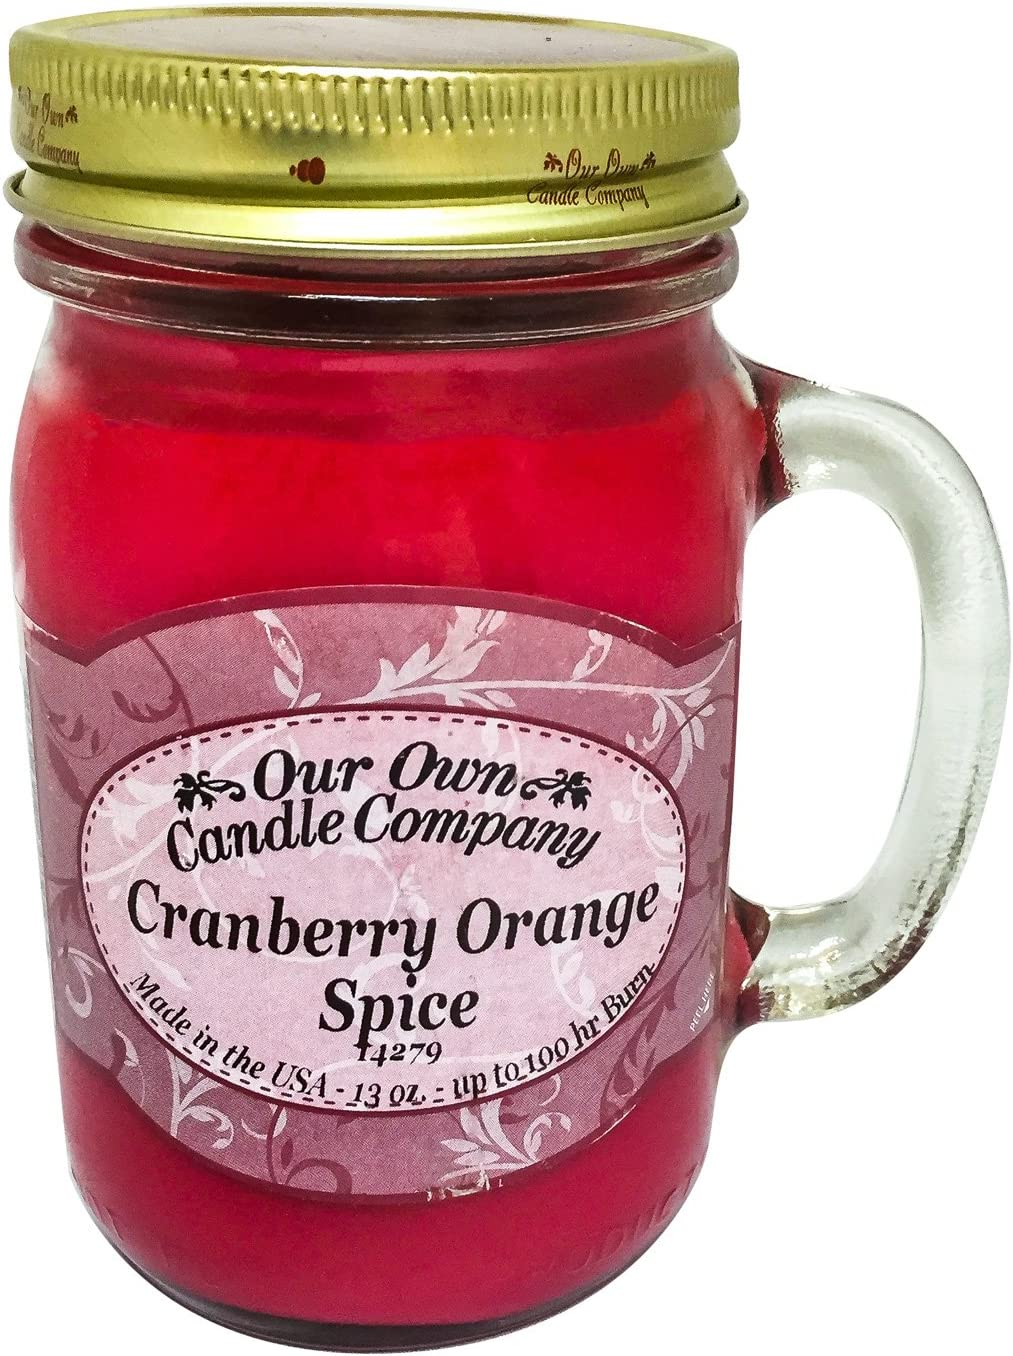 Our Own Candle Company Cranberry Orange Spice Scented 13 Ounce Mason Jar Candle